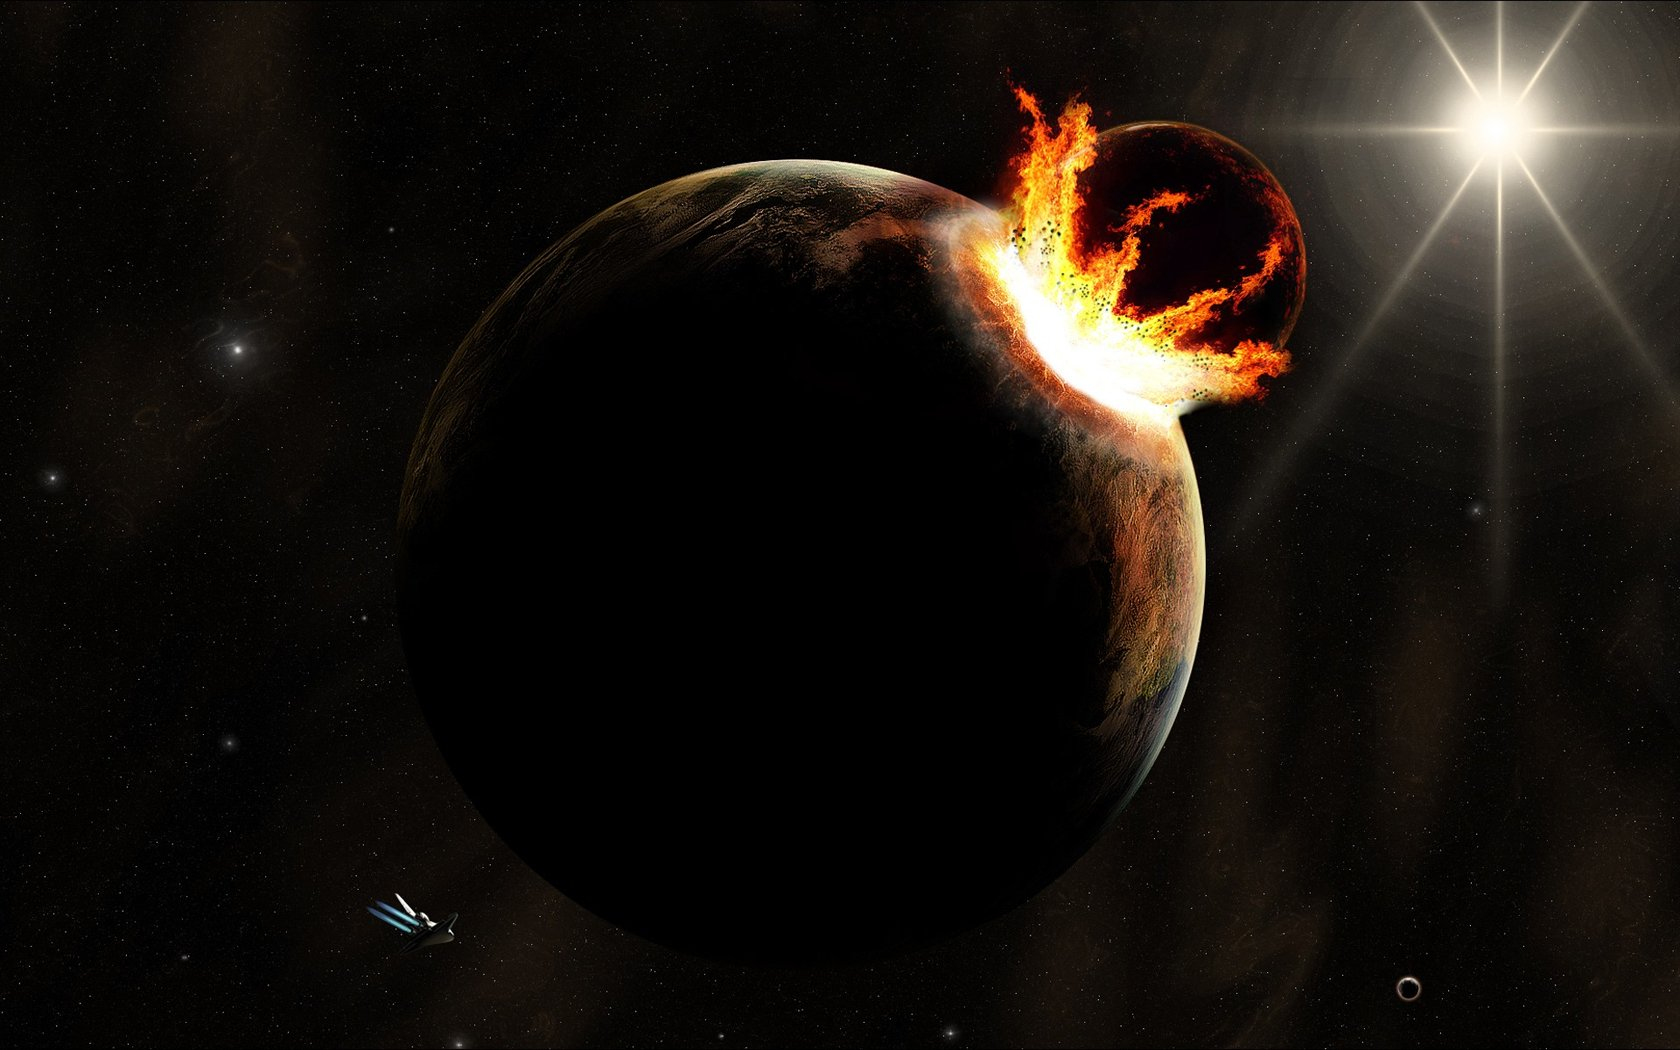 Exoplanet is evaporating. And in the cosmic sense very quickly!